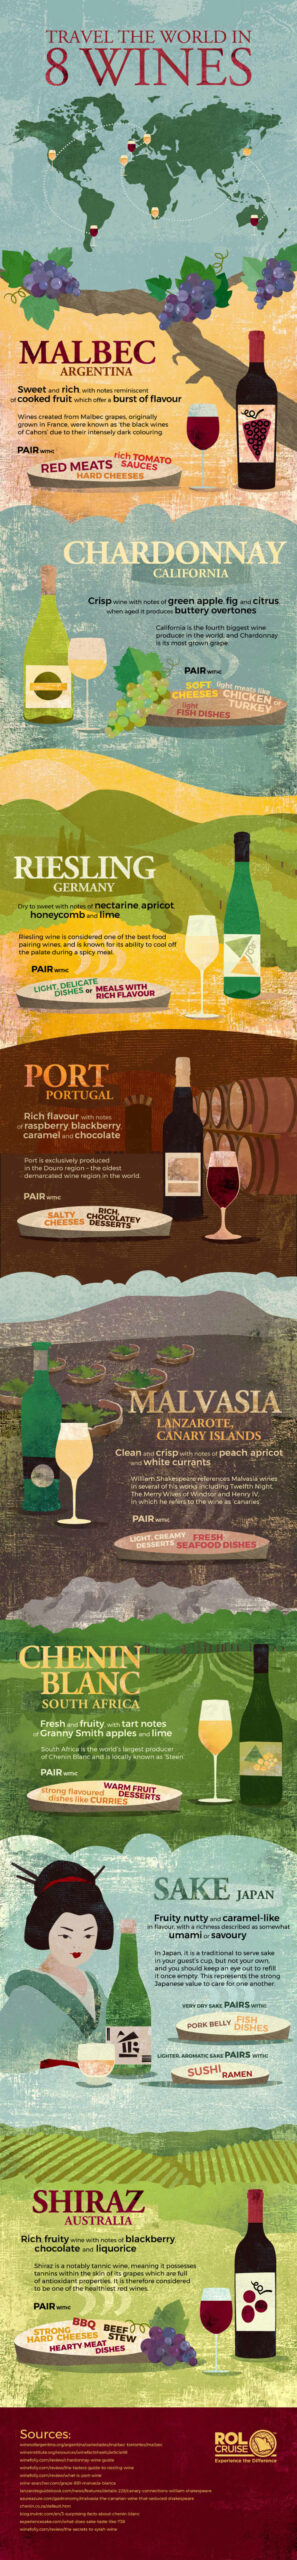 Infographic Travel the World in 8 Wines